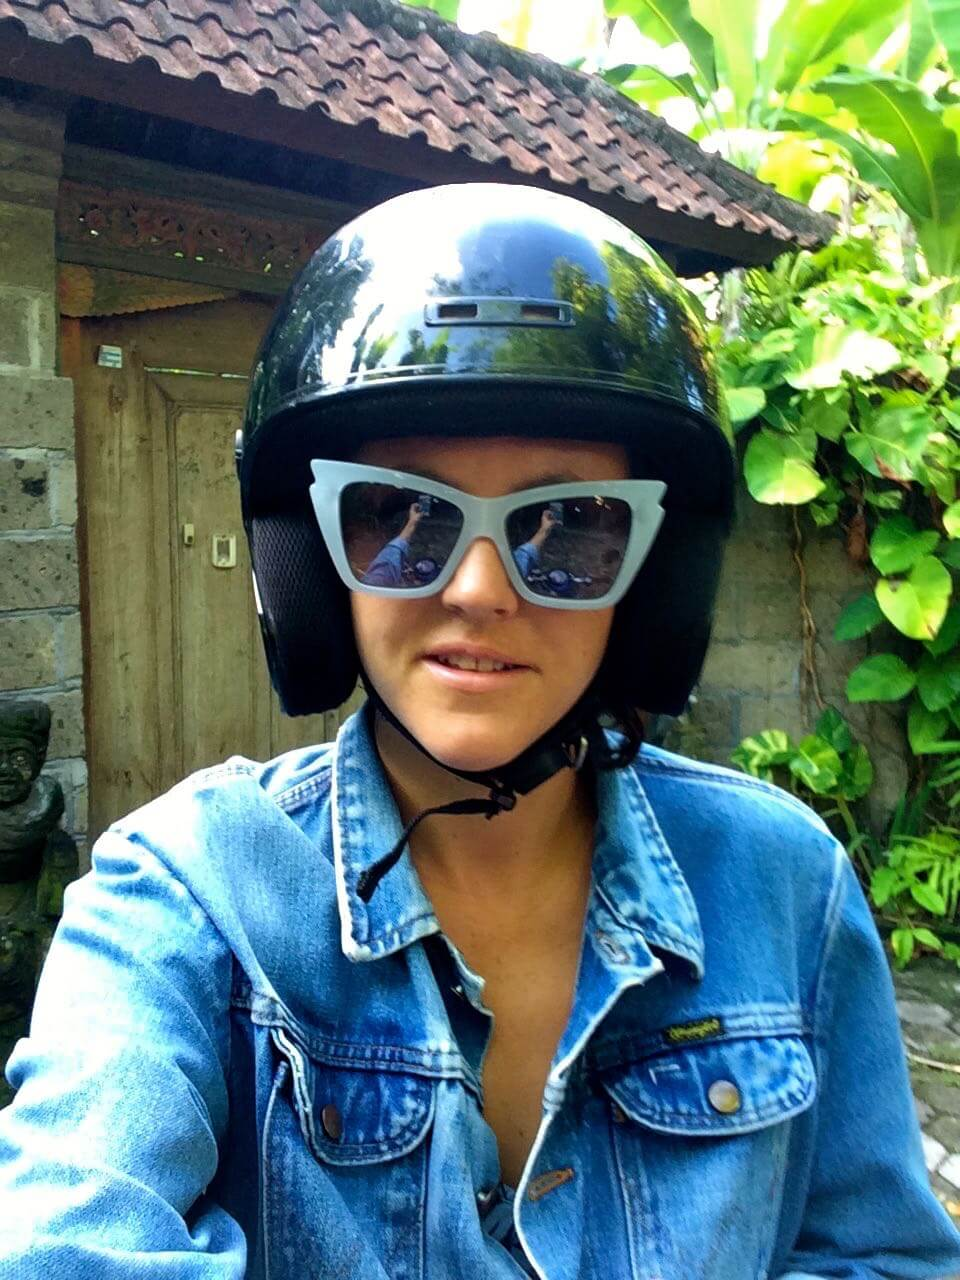 What I learned about life while riding a motorbike in Bali